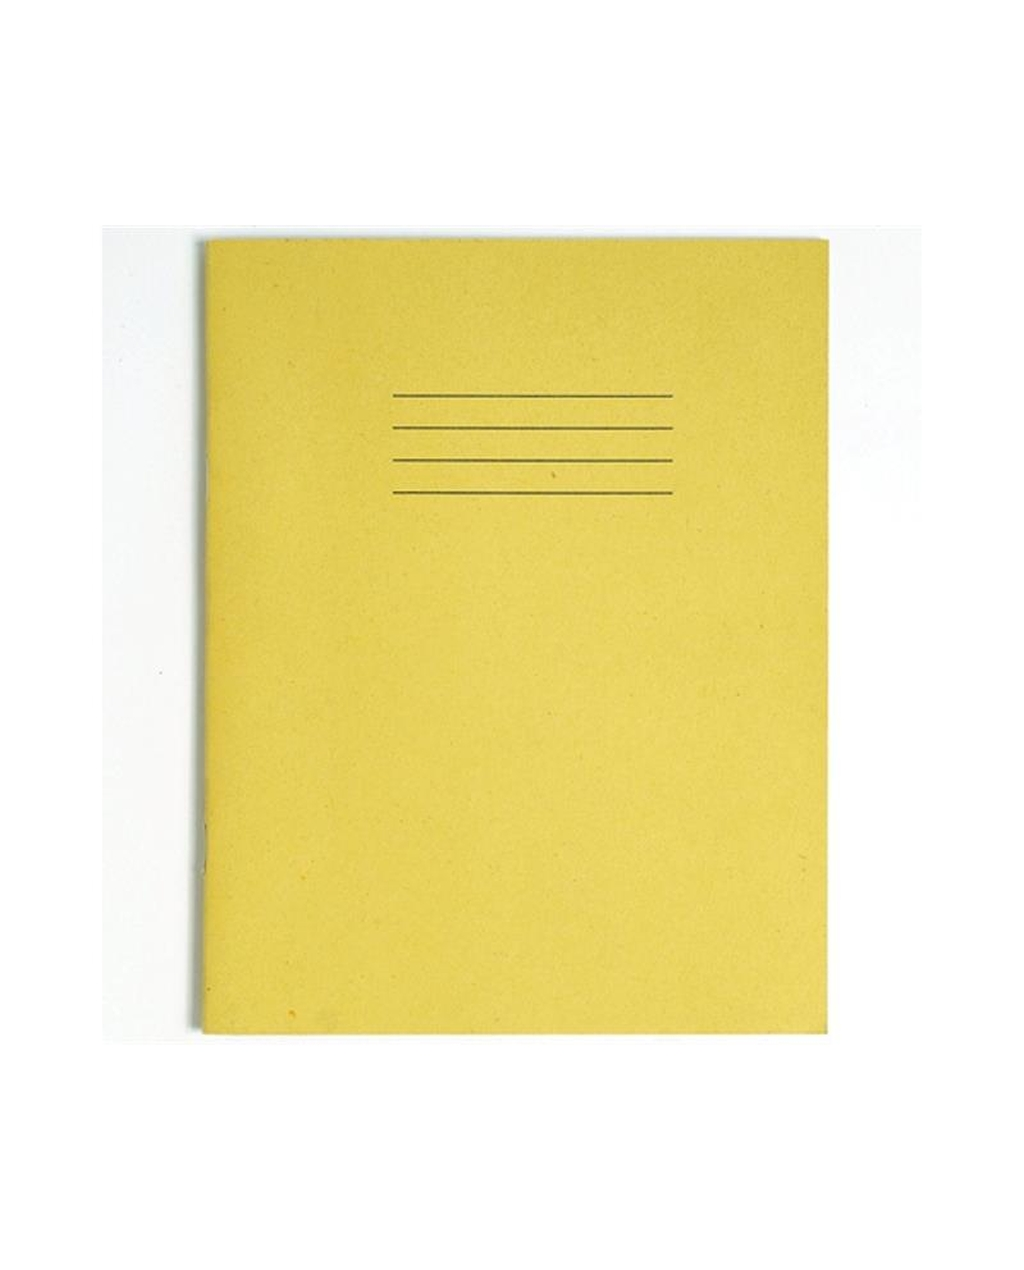 Exercise Book A4+ (330 x 250mm) Yellow Cover Plain - No Ruling 80 Pages